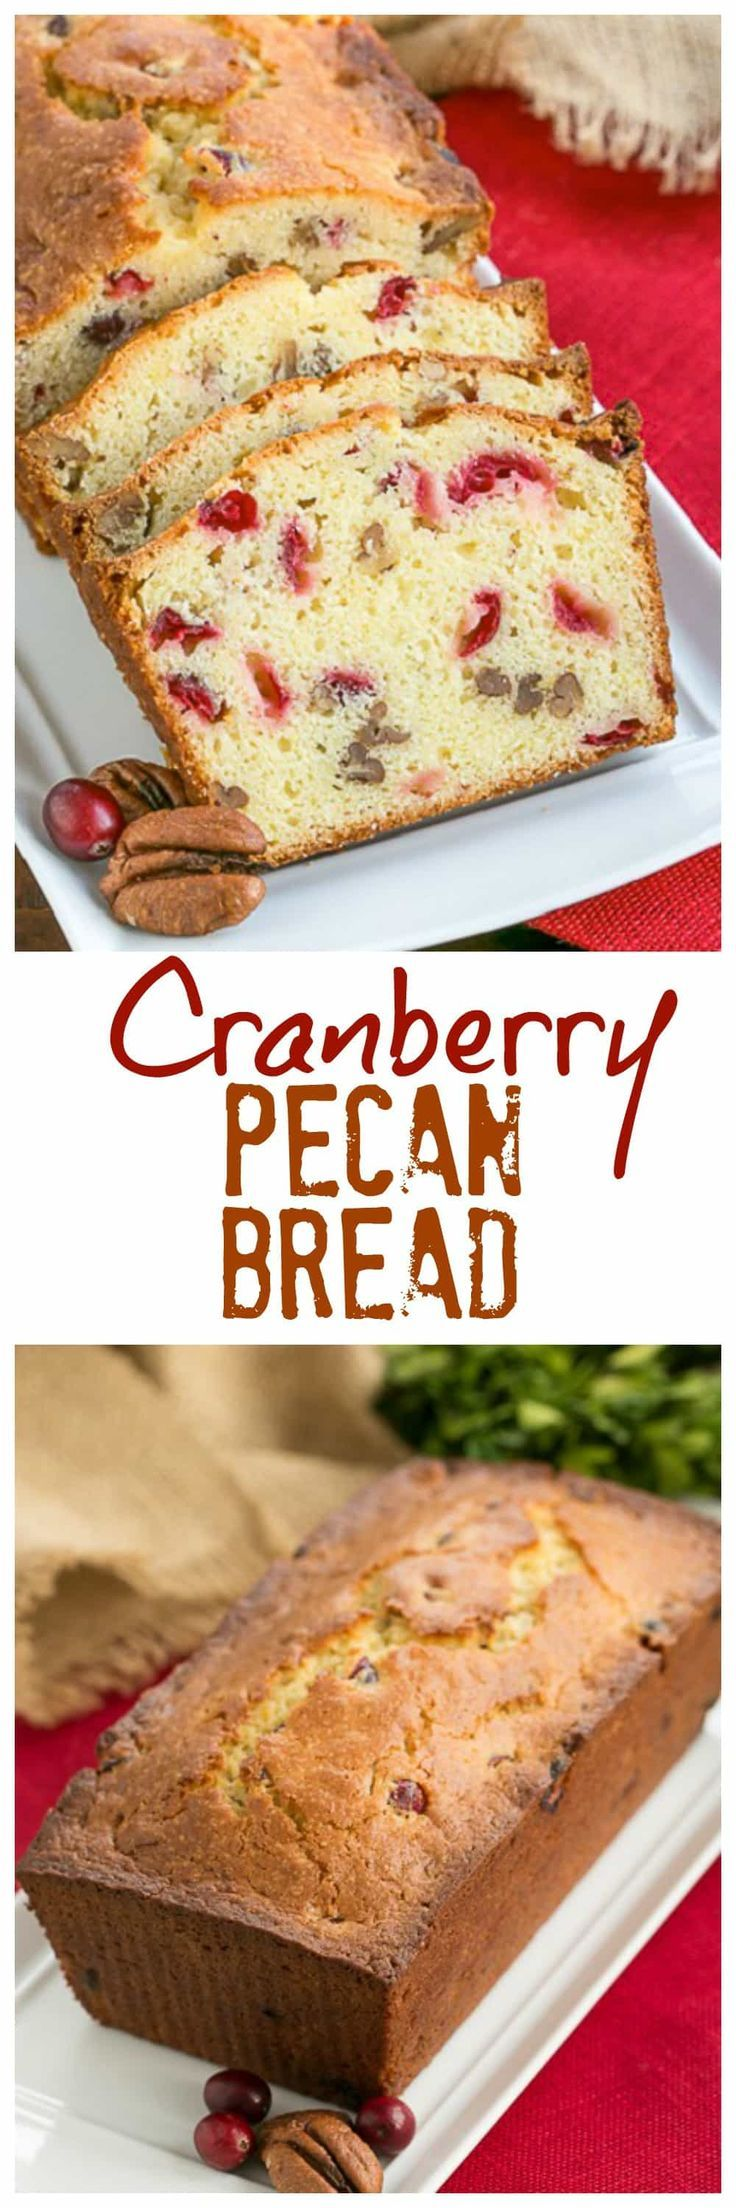 Cranberry Pecan Bread | Moist, dense and loaded with fresh cranberries and nuts! #thanksgiving #cranberries #bread